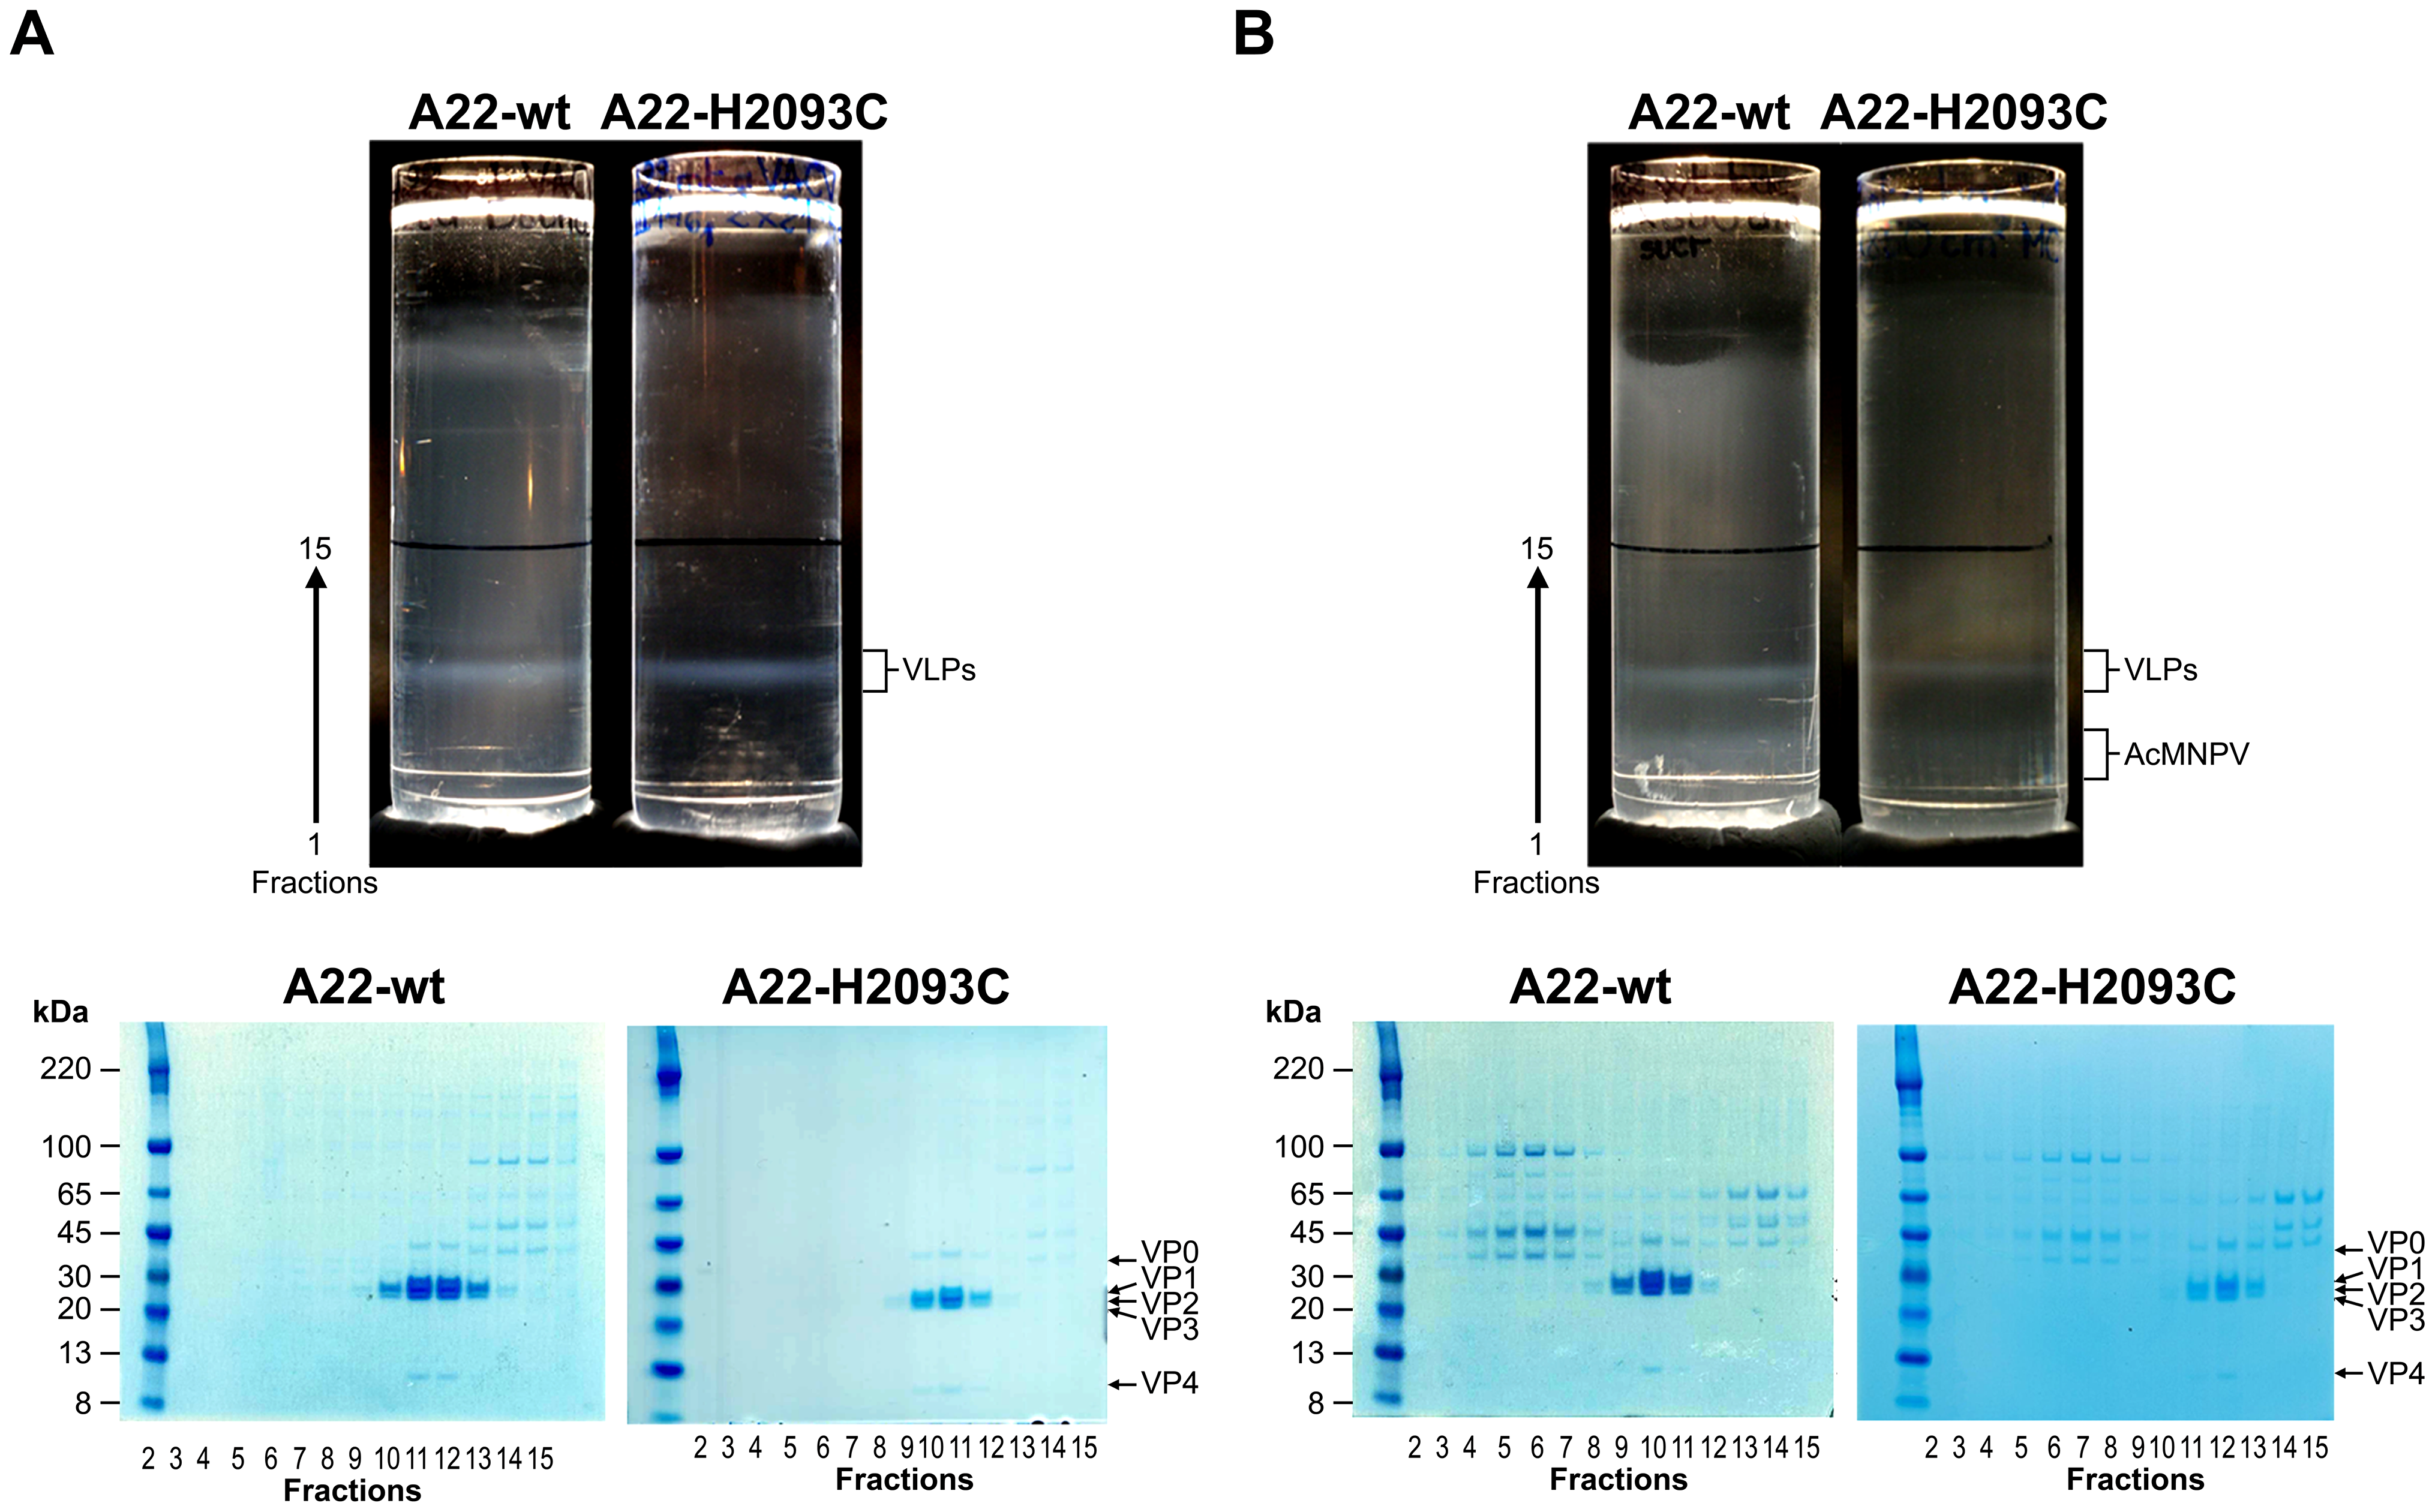 Sucrose gradient purification and SDS PAGE analysis of A22-wt and A22-H2093C recombinant capsids.